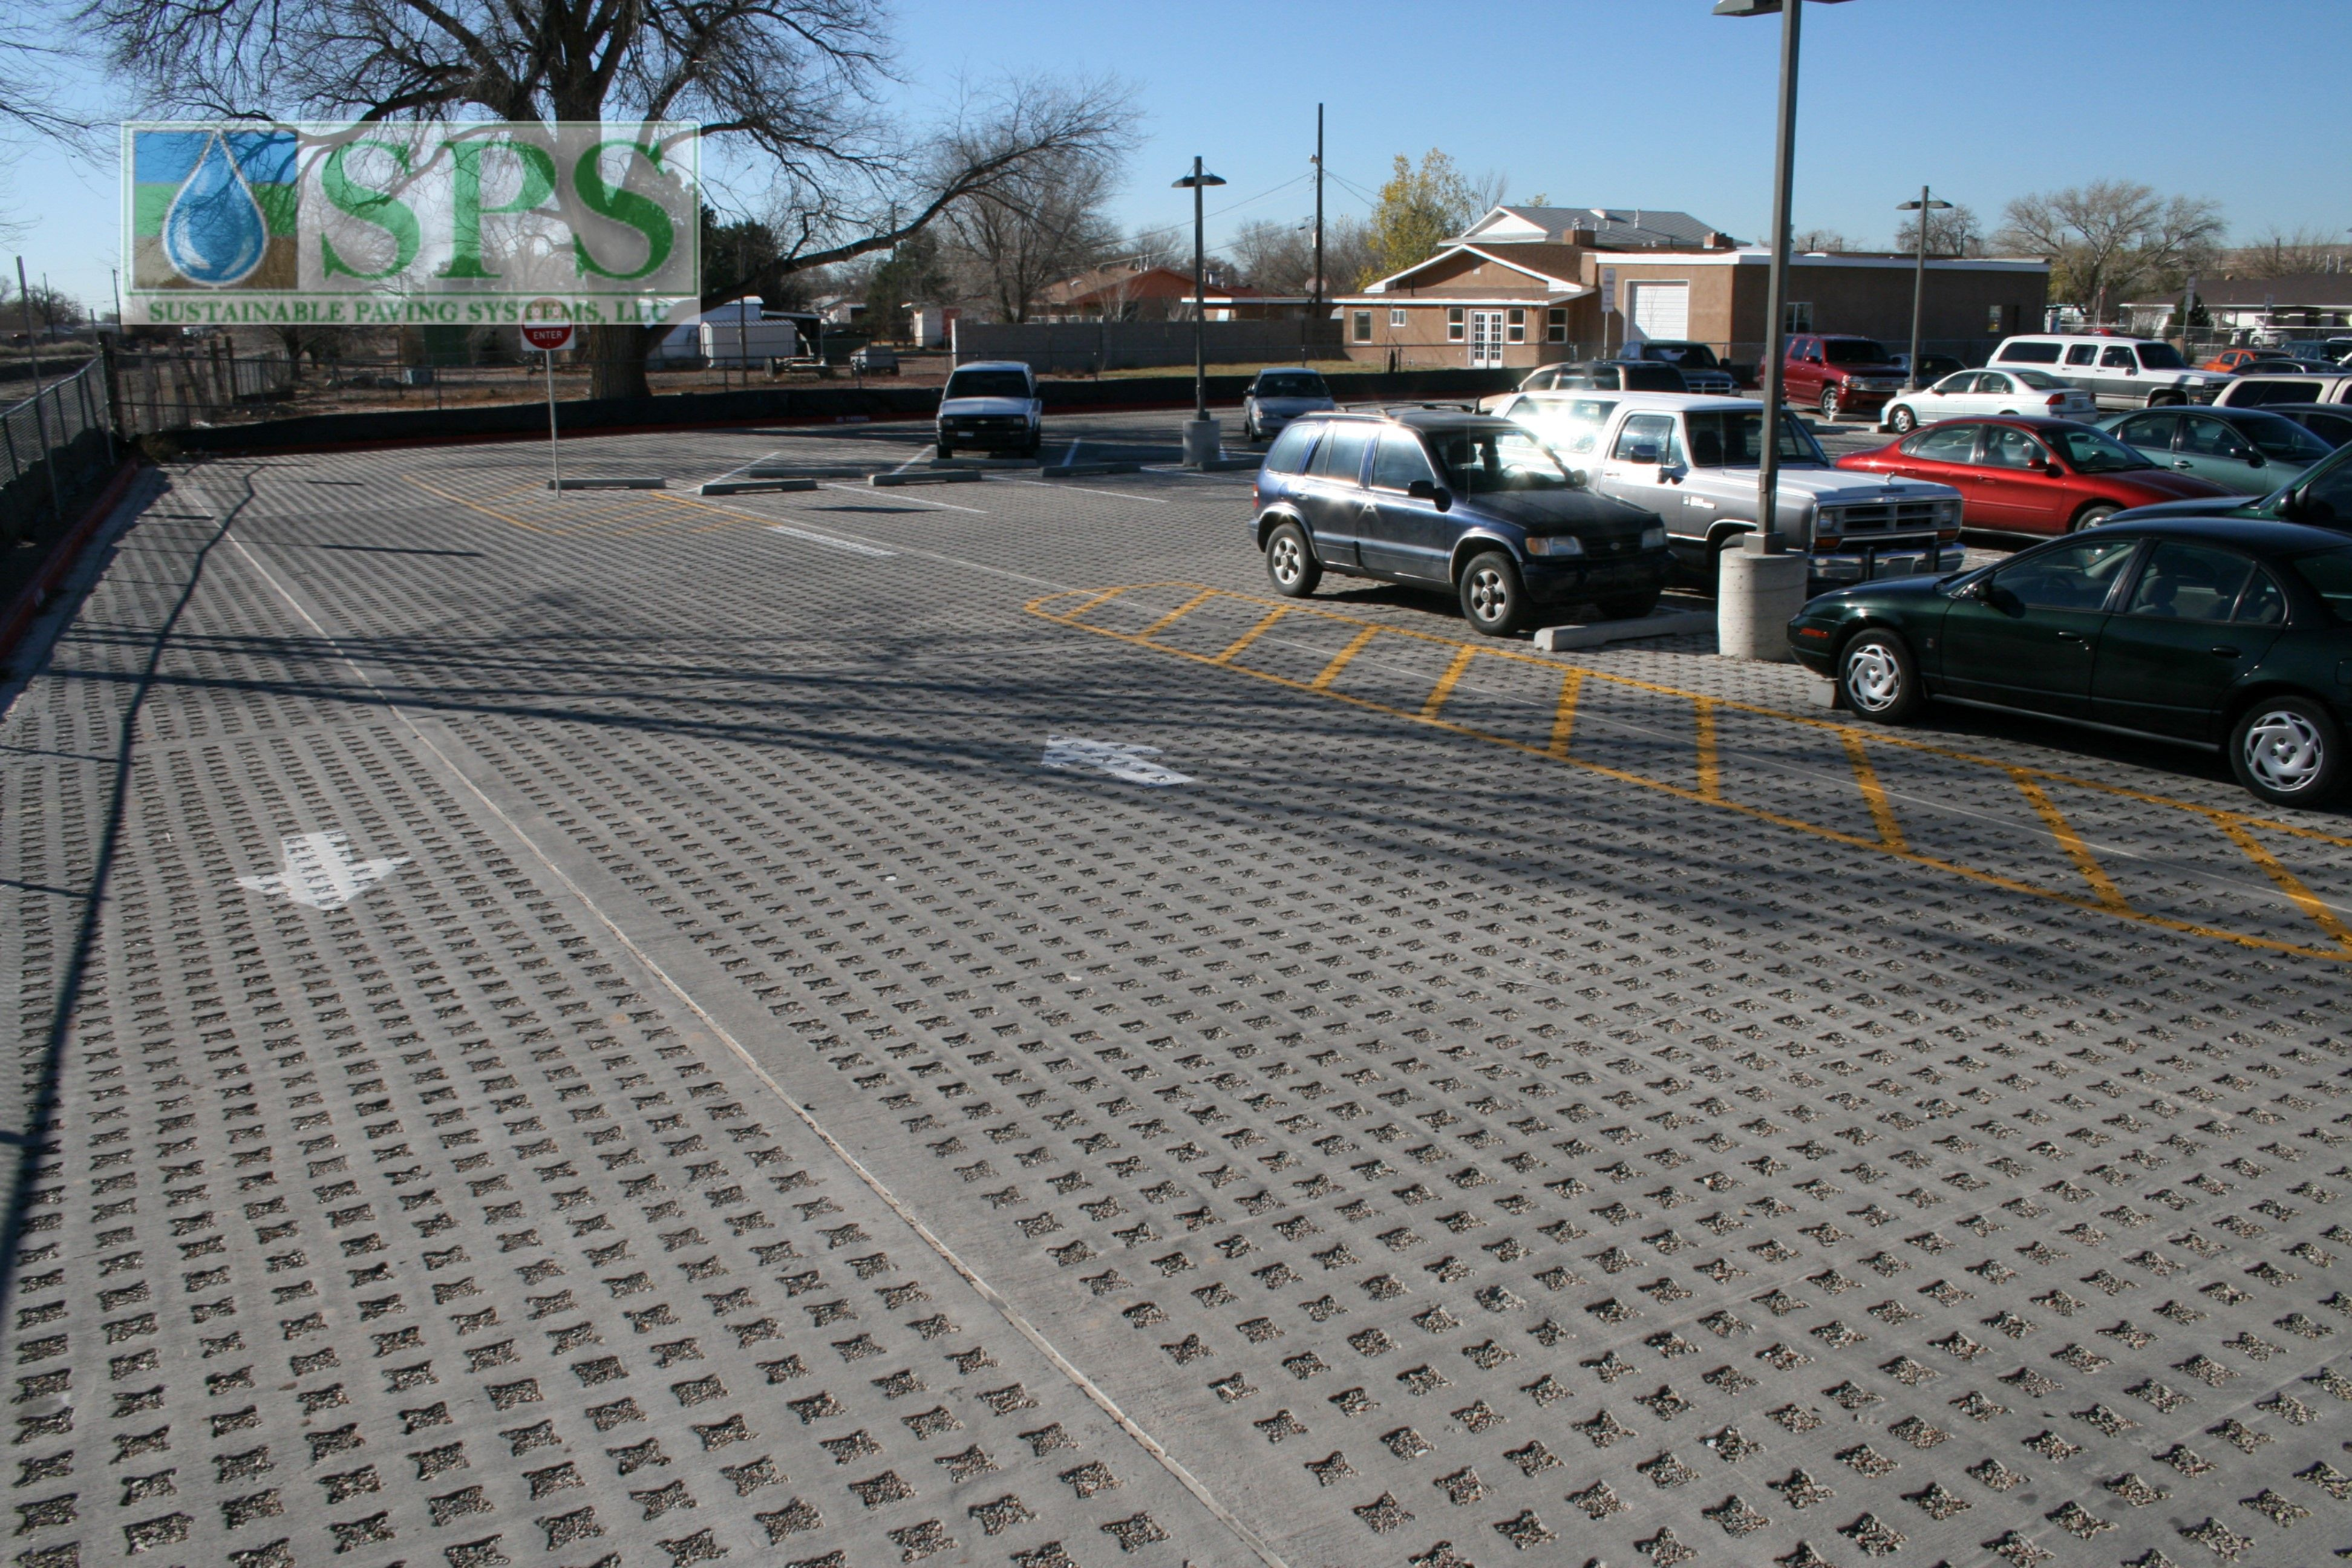 Grasscrete Stone Filled System At Navajo Elementary School View Of Parking Lot_04